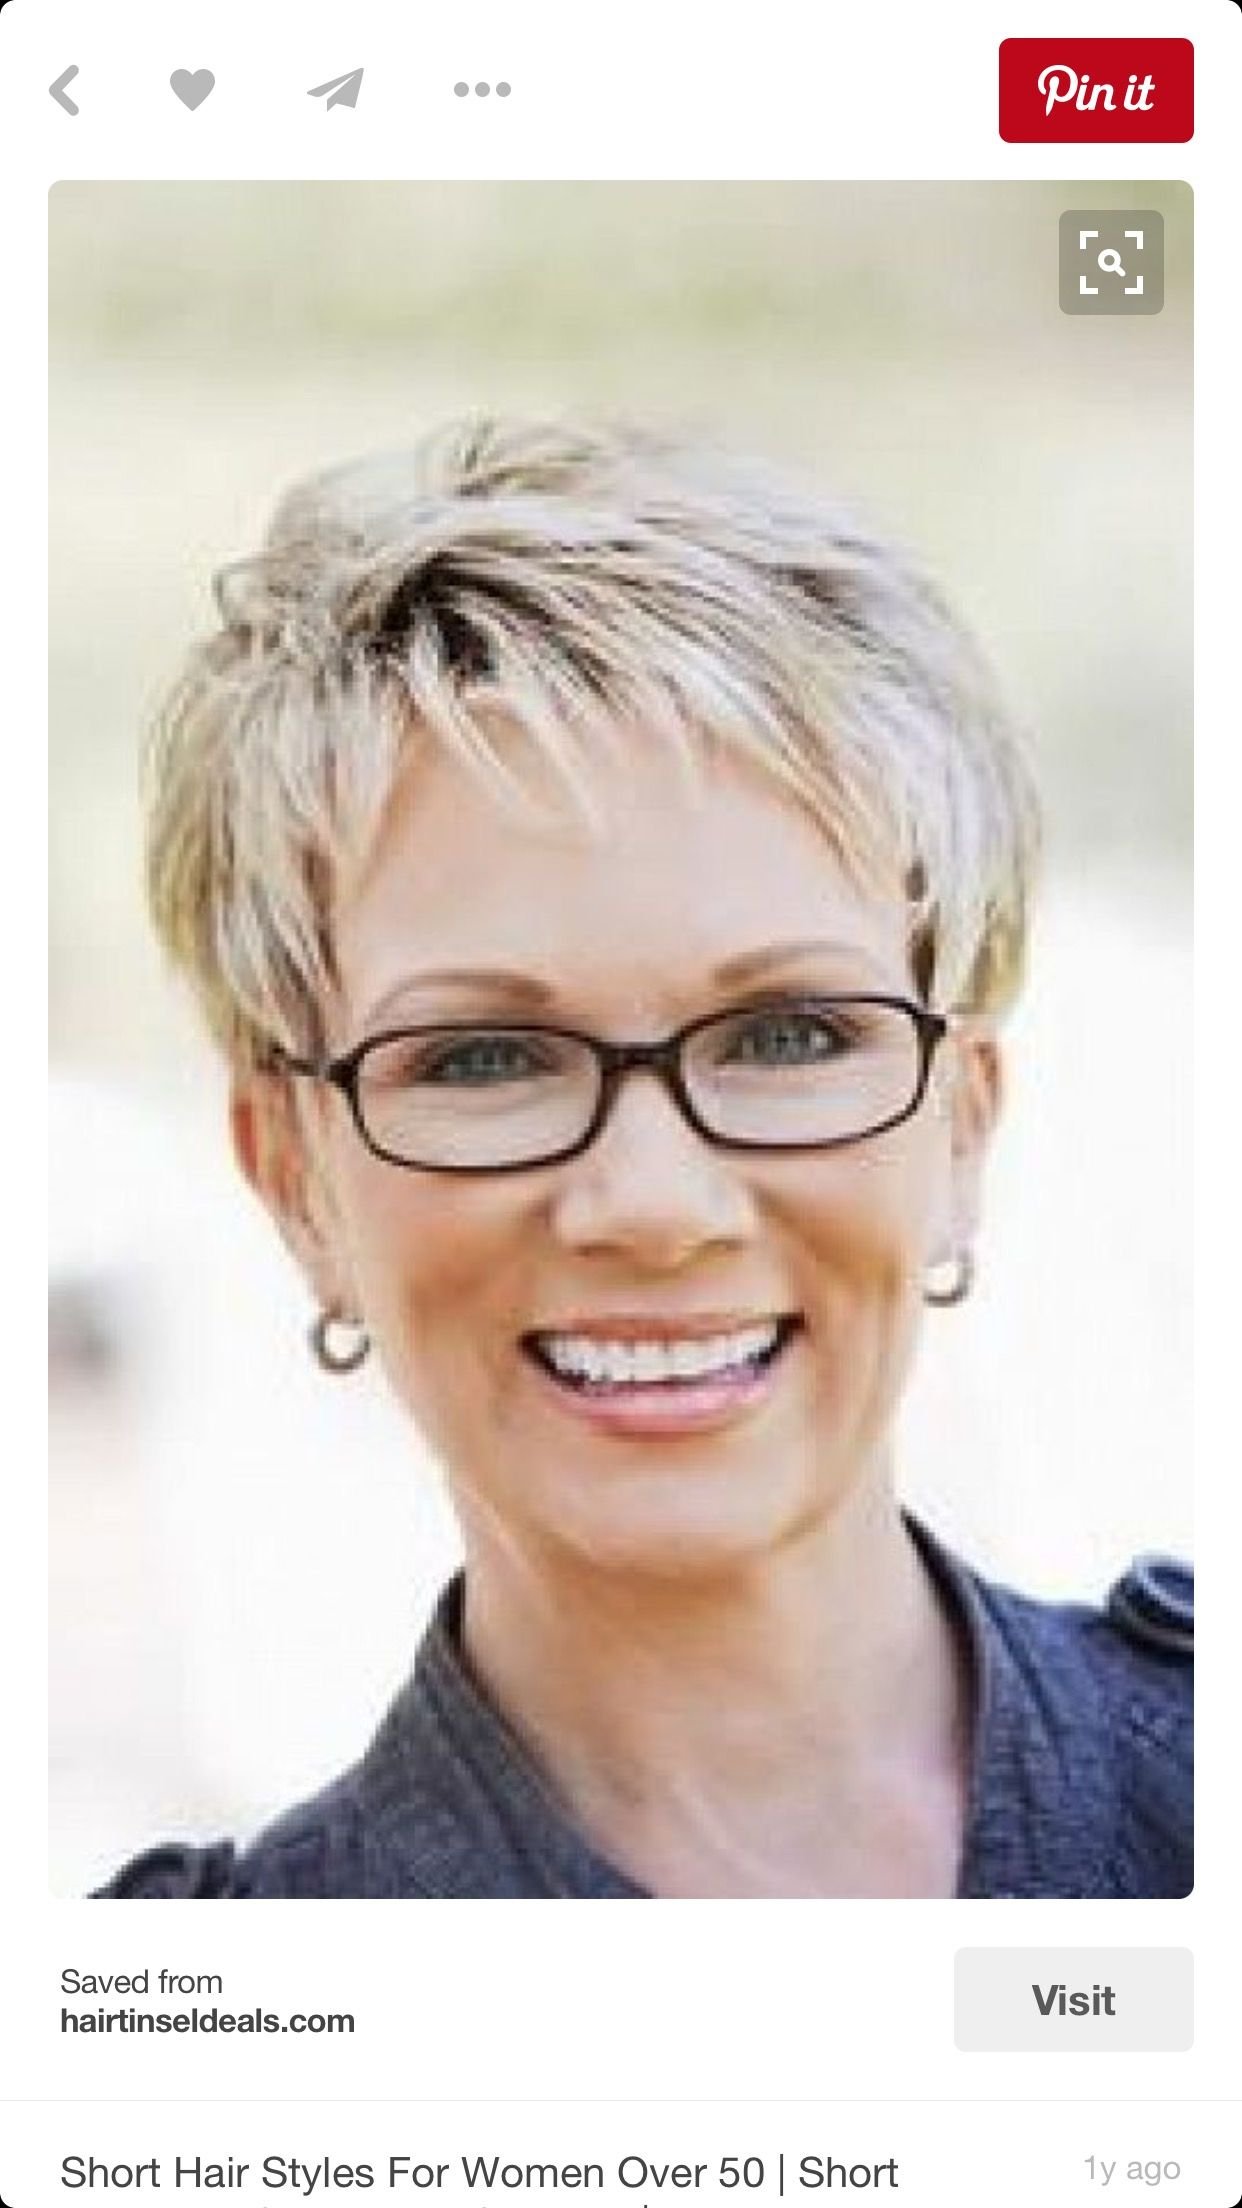 pin by connie fullhart on hair | pinterest | short haircuts, short